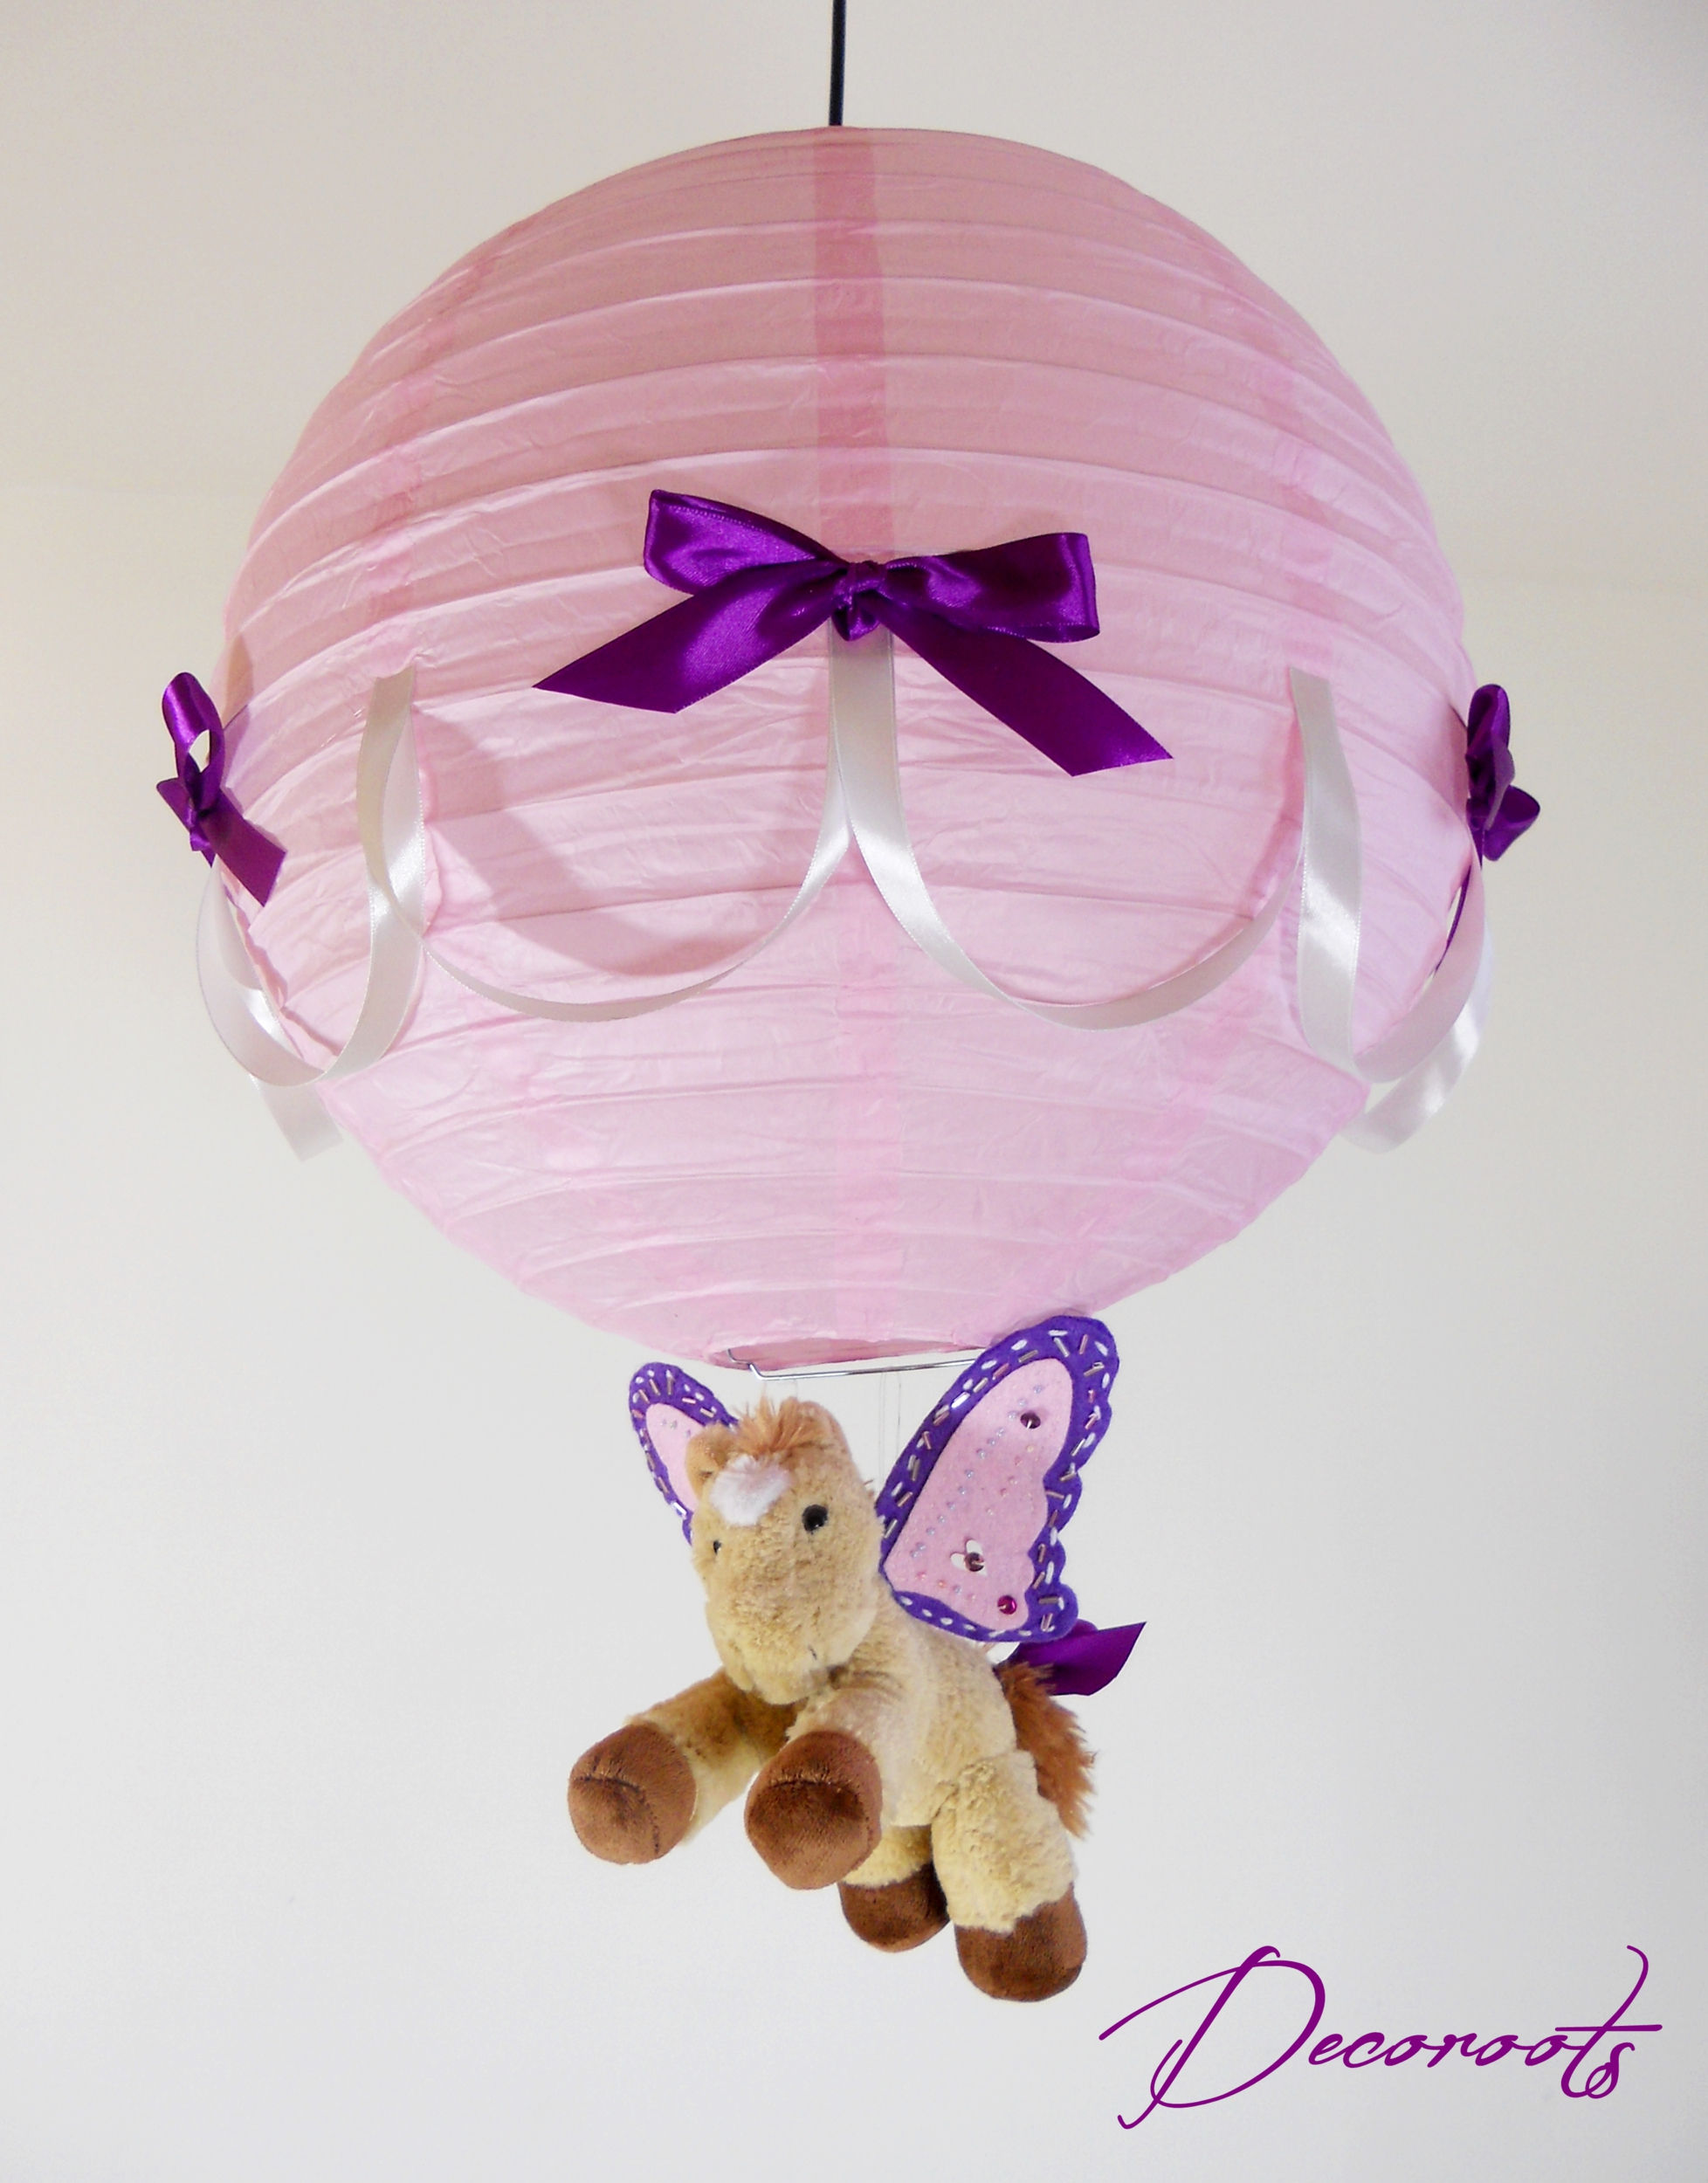 Lampe suspension enfant b b caramel le poney ail rose - Lampe suspension enfant ...